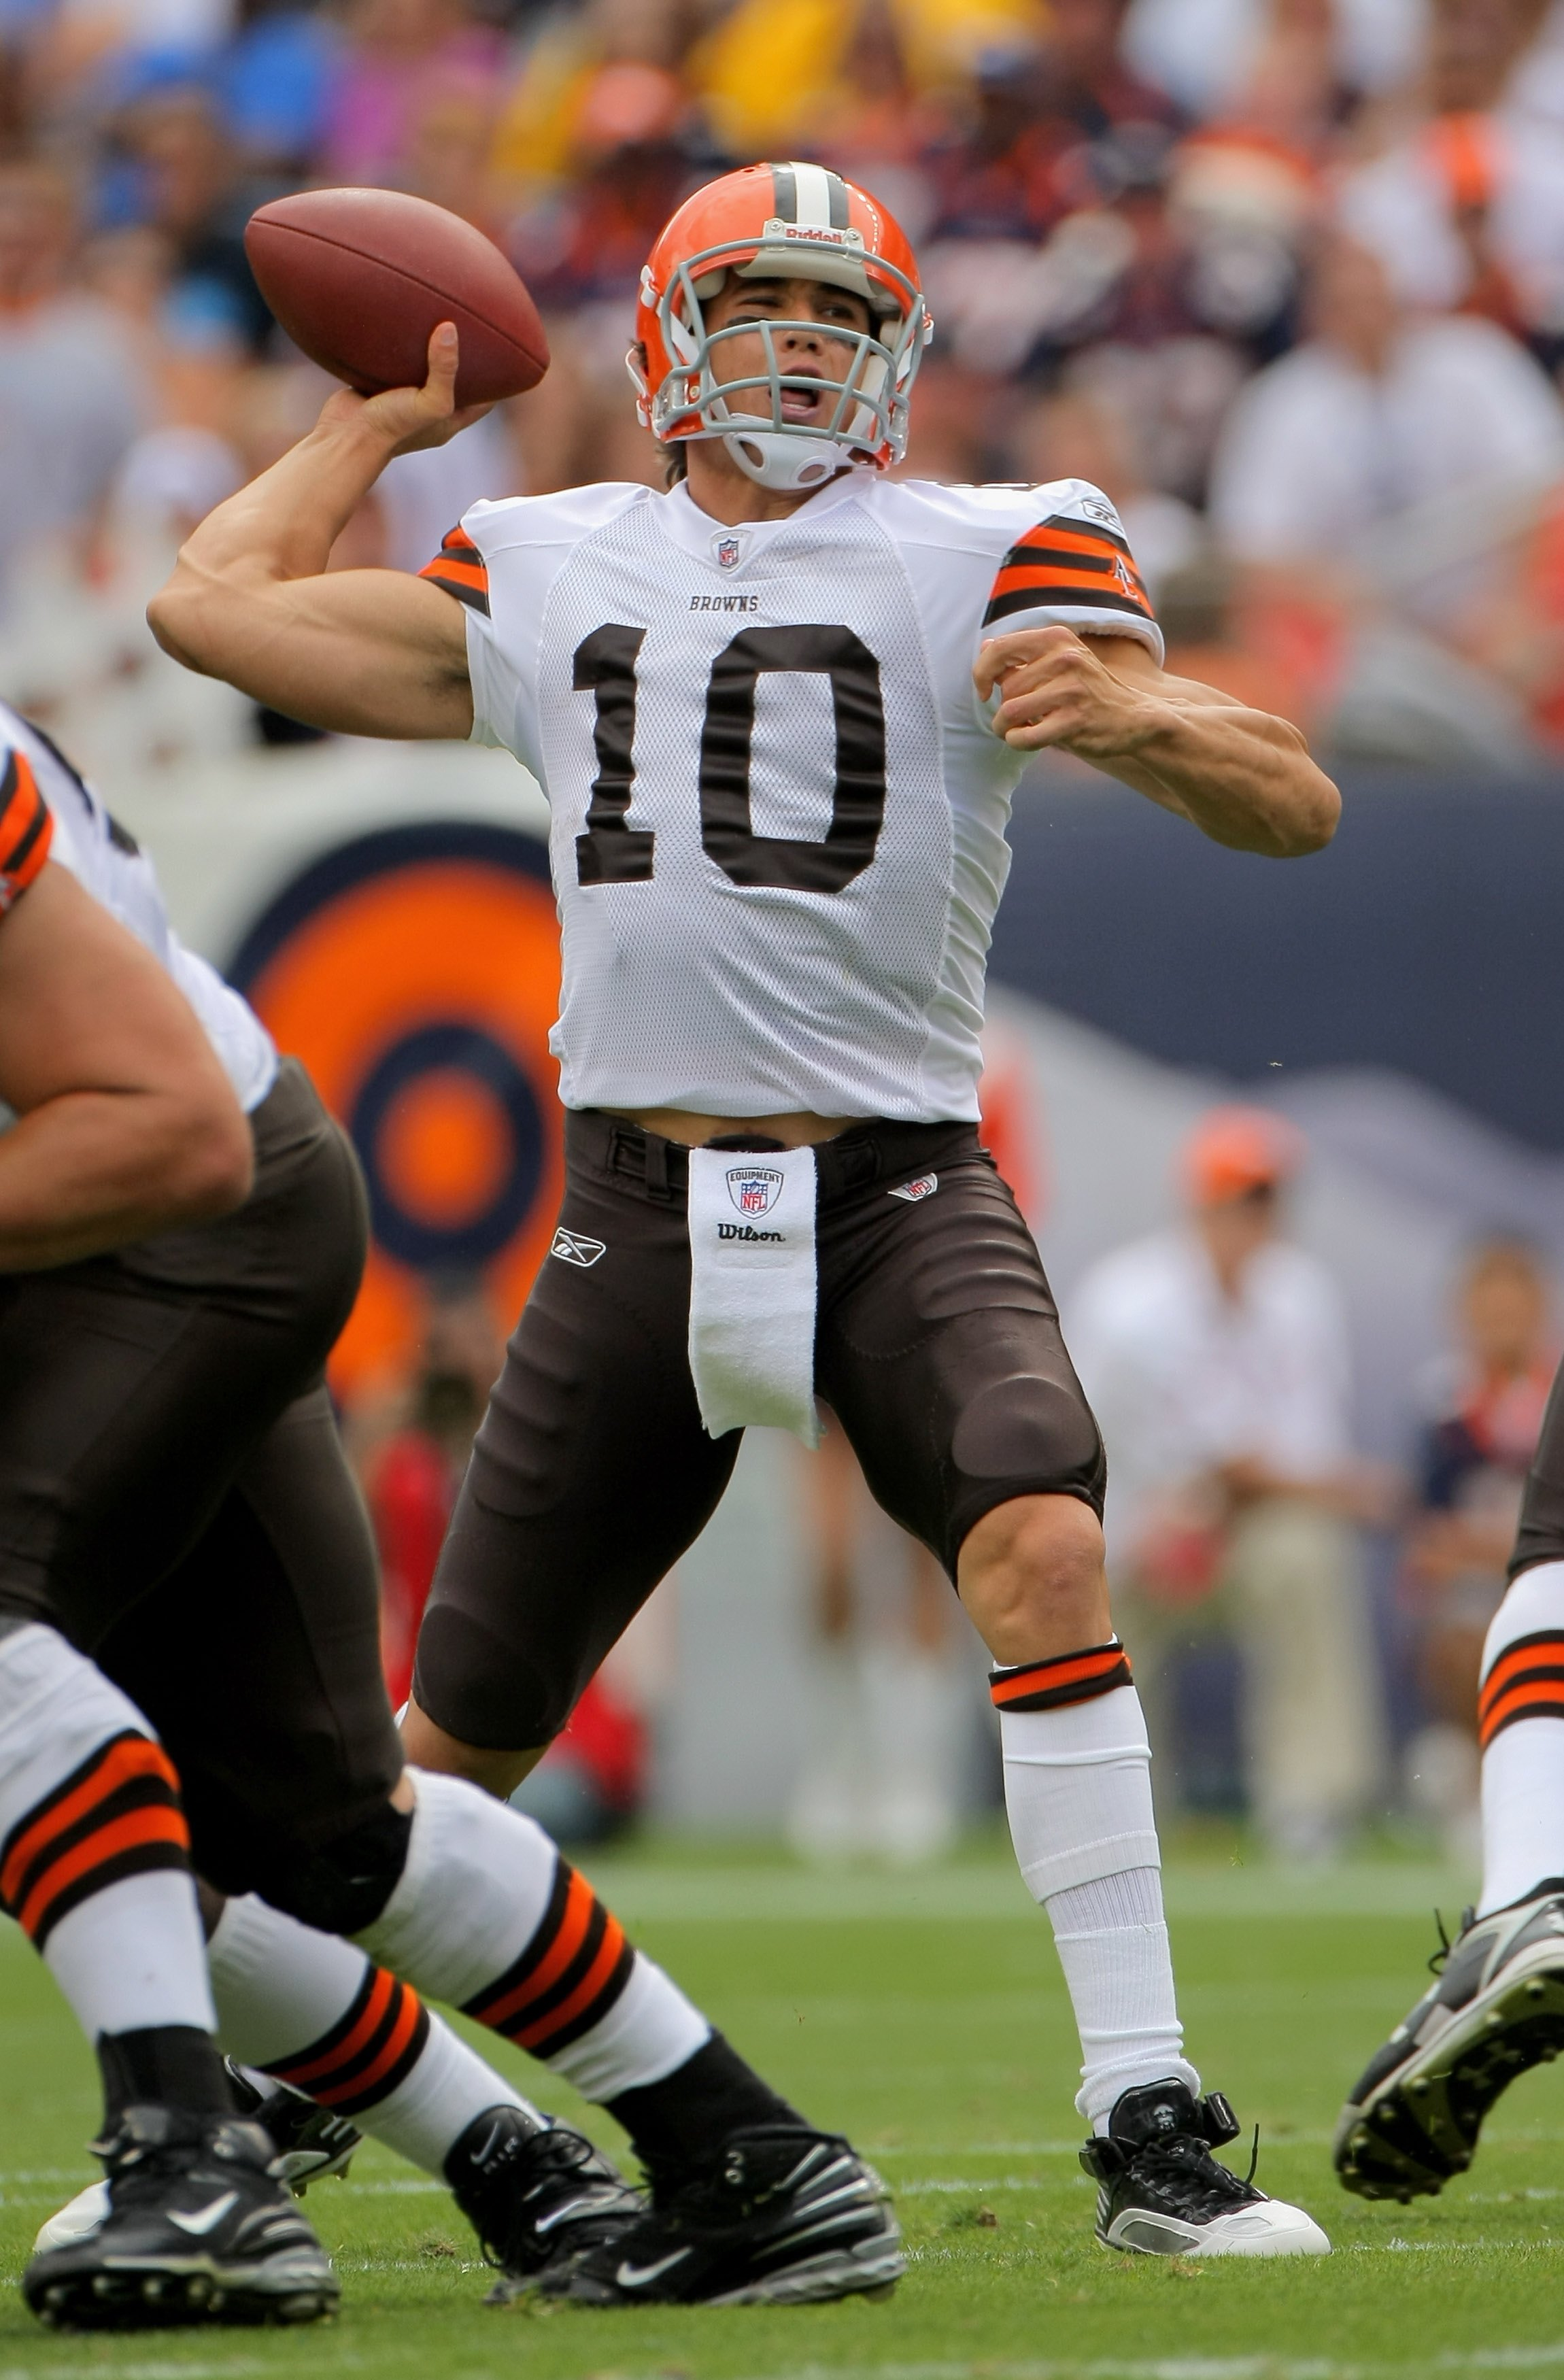 DENVER - SEPTEMBER 20:  Quarterback Brady Quinn #10 of the Cleveland Browns delivers a pass against the Denver Broncos during NFL action at Invesco Field at Mile High on September 20, 2009 in Denver, Colorado. The Broncos defeated the Browns 27-6.  (Photo